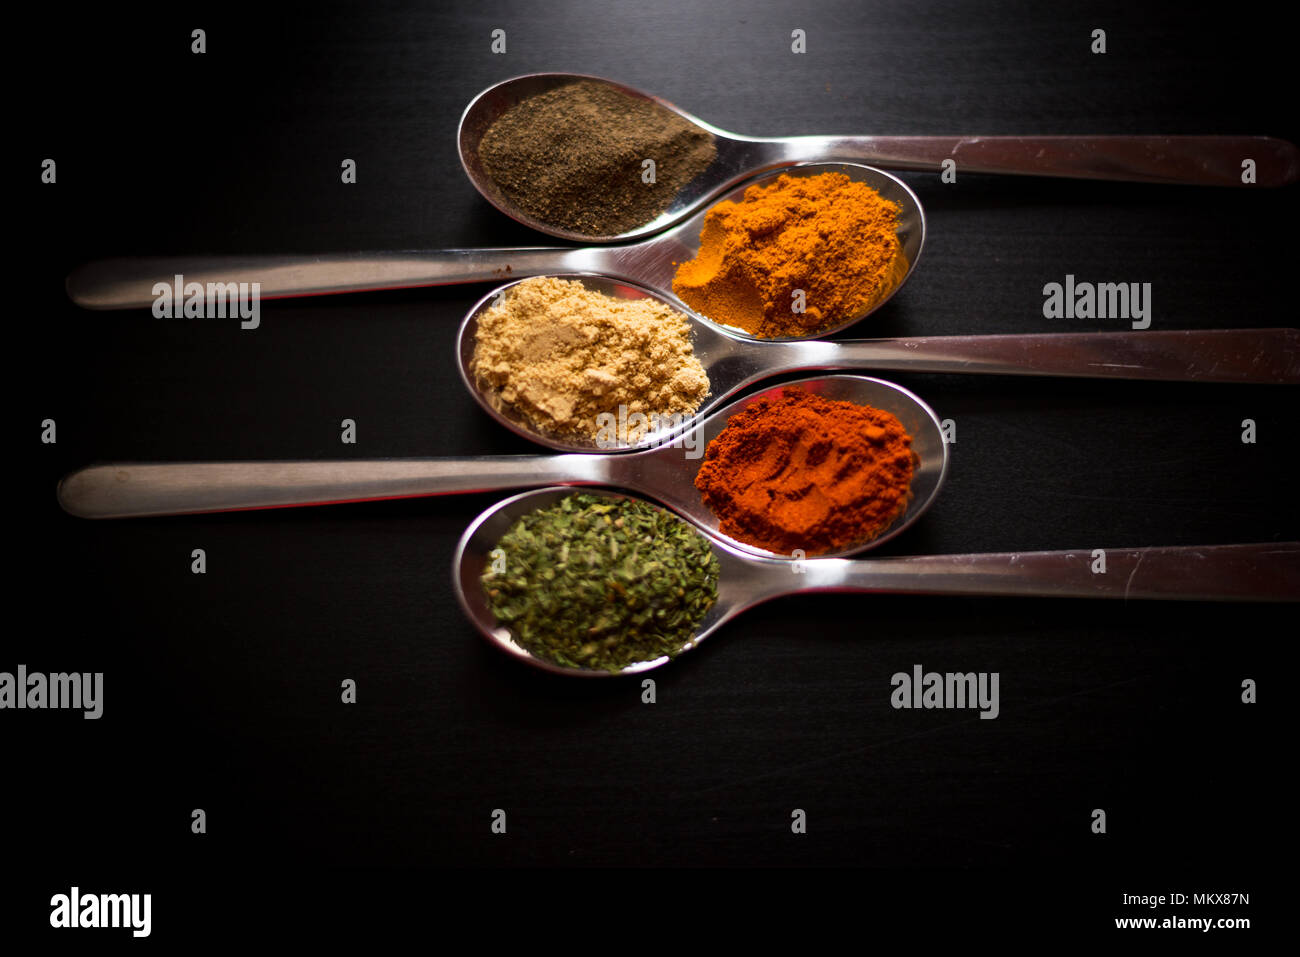 Spices colored in silver spoons, placed on a black wooden table. Pepper, pepper, salt, basil, mustard - Stock Image